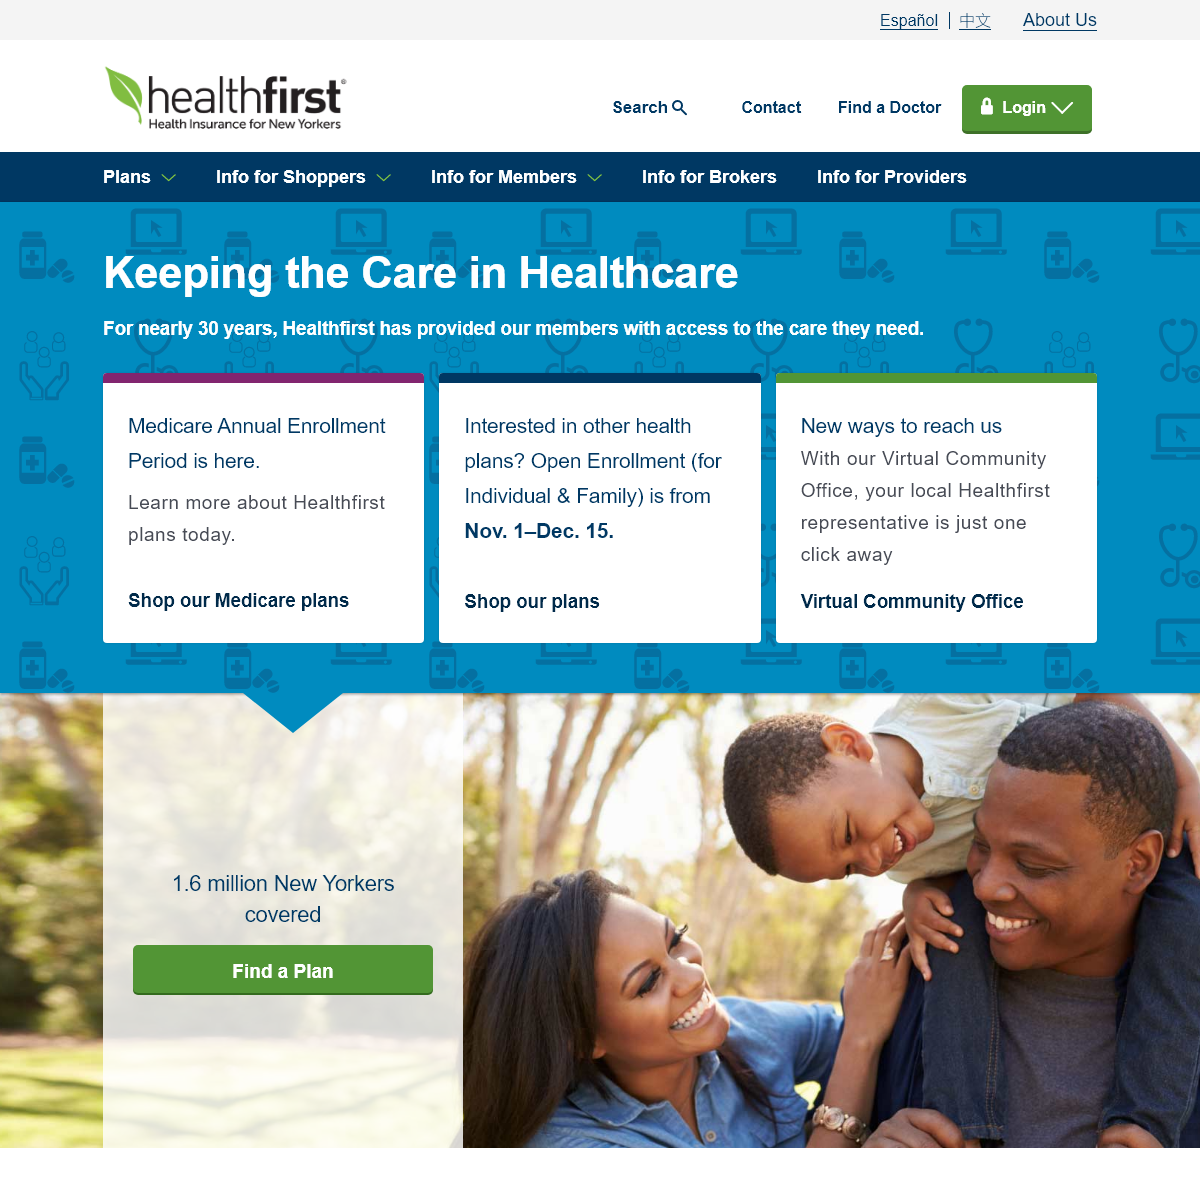 New York Health Insurance - Healthfirst